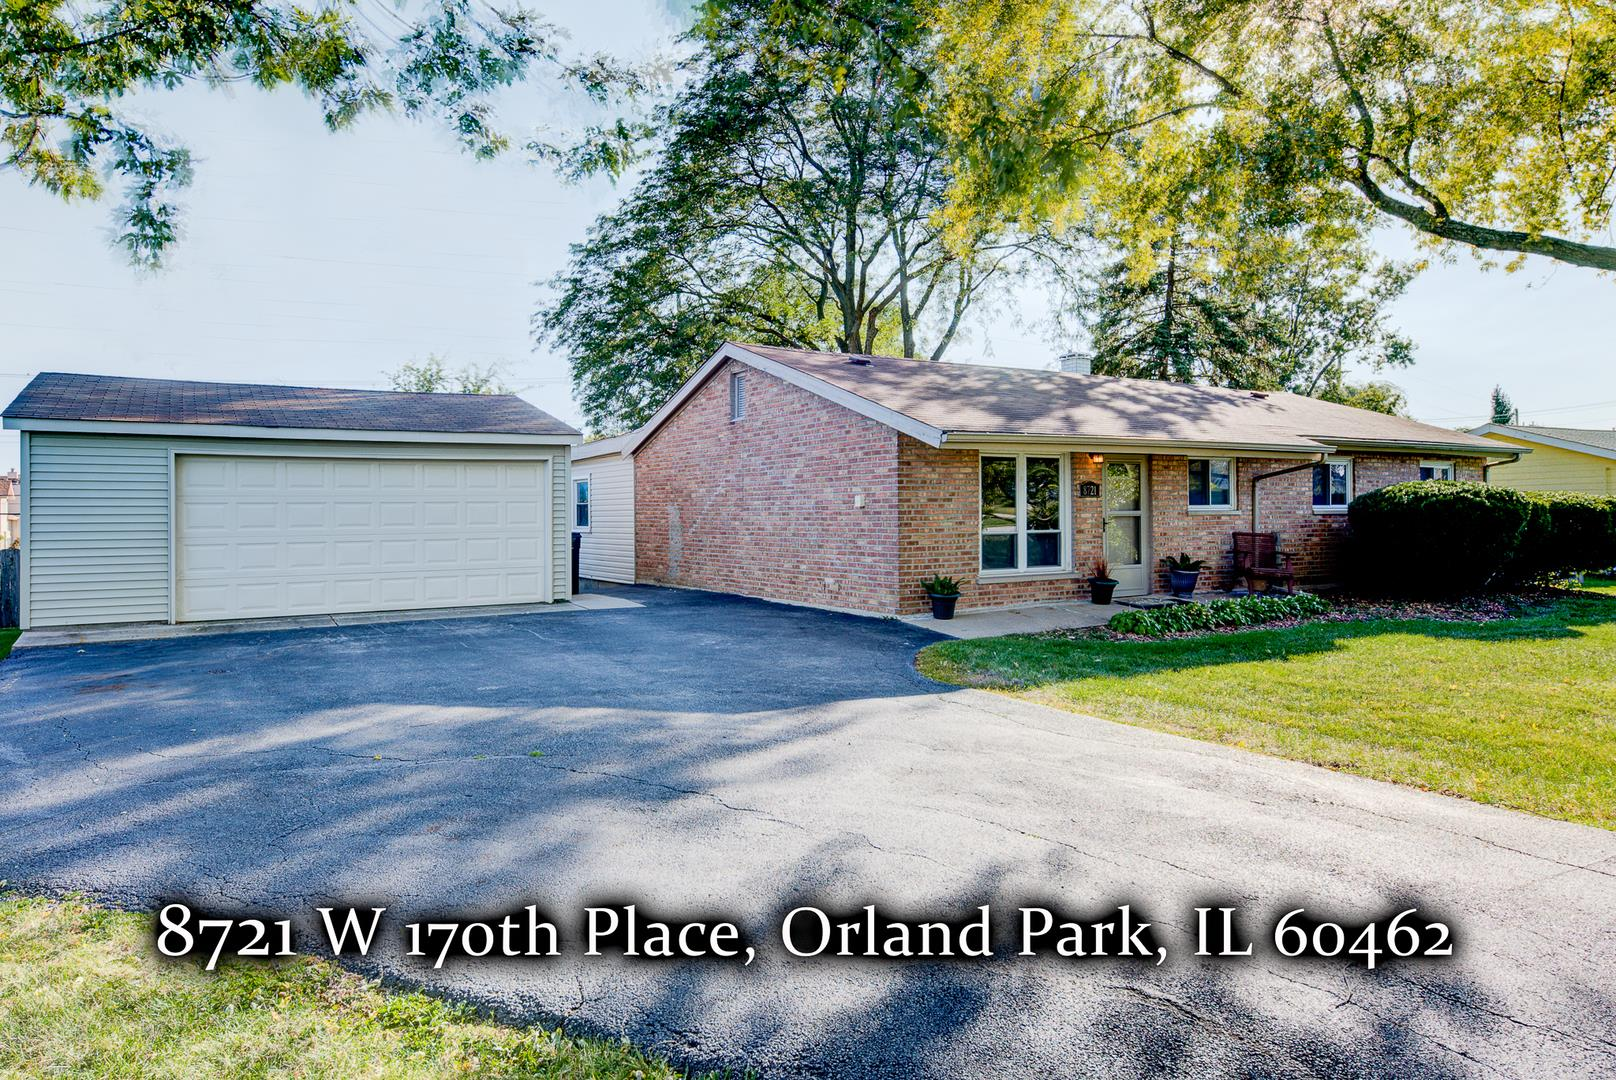 8721 W 170th Place, Orland Park, IL 60462 - #: 10661813